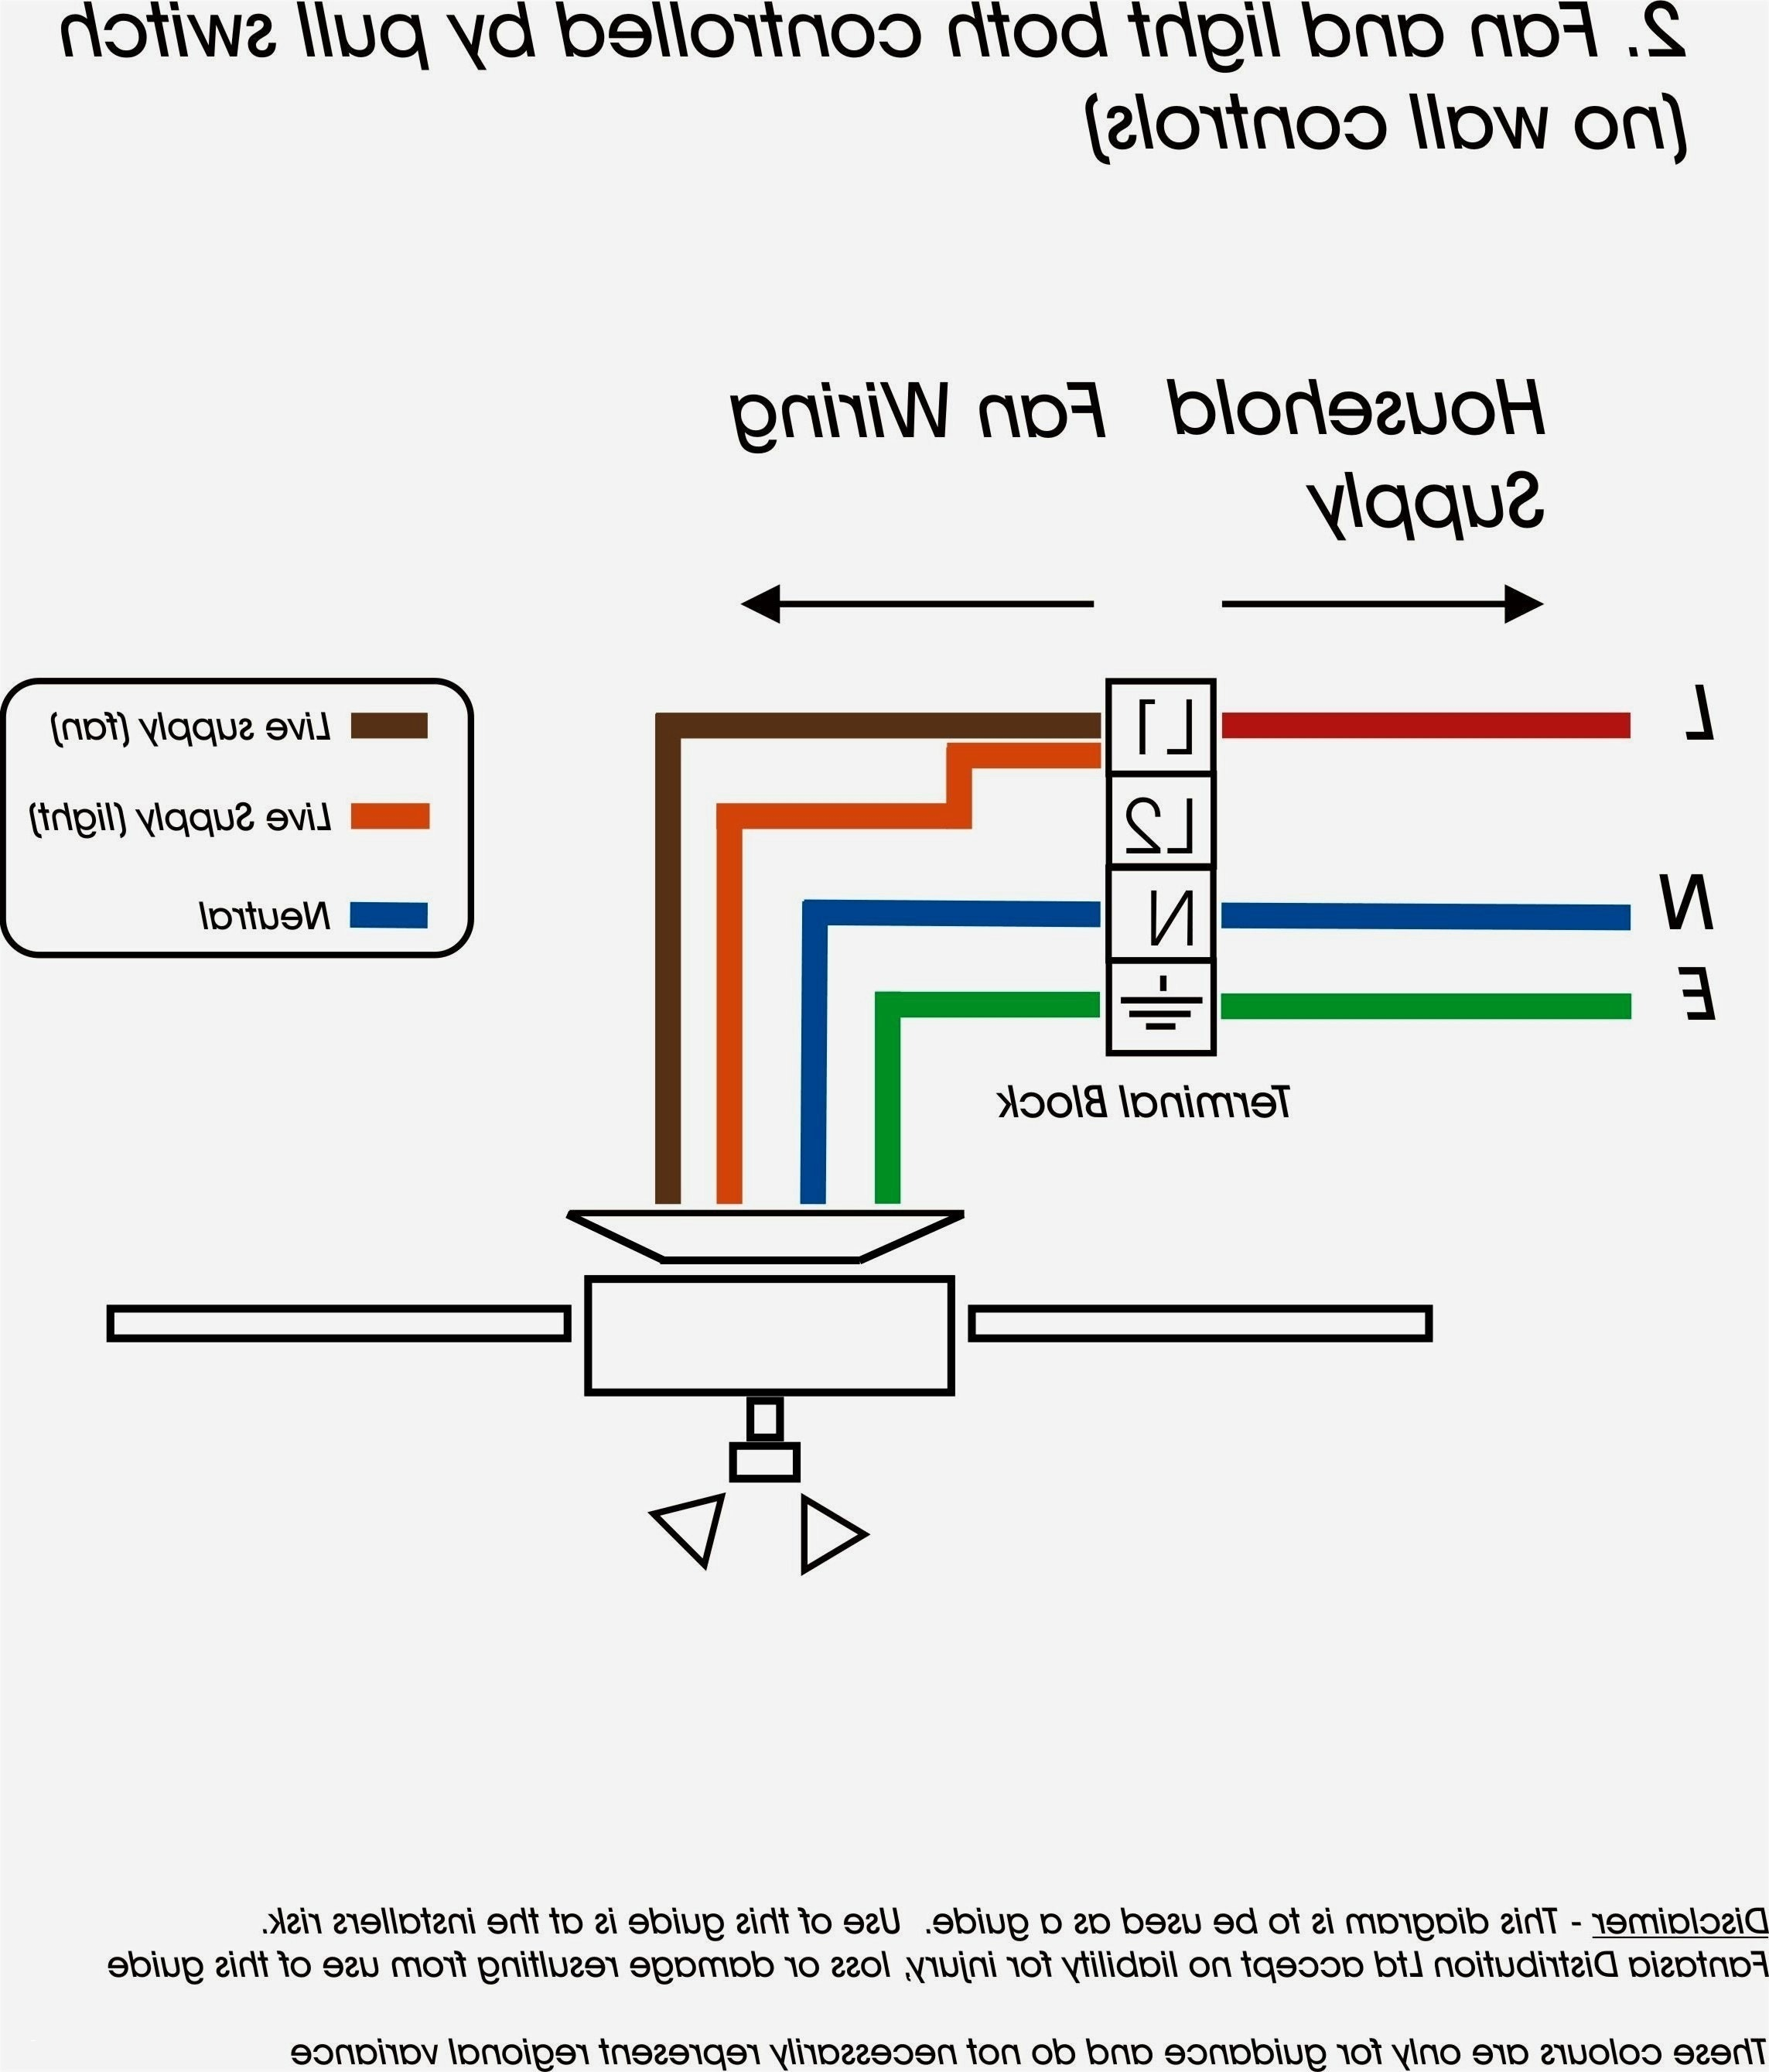 3 way switch wiring diagram Download-How to Wire A 3 Way Switch Diagram Unique Fan isolator Pull Switch Wiring Diagram Valid 7-i